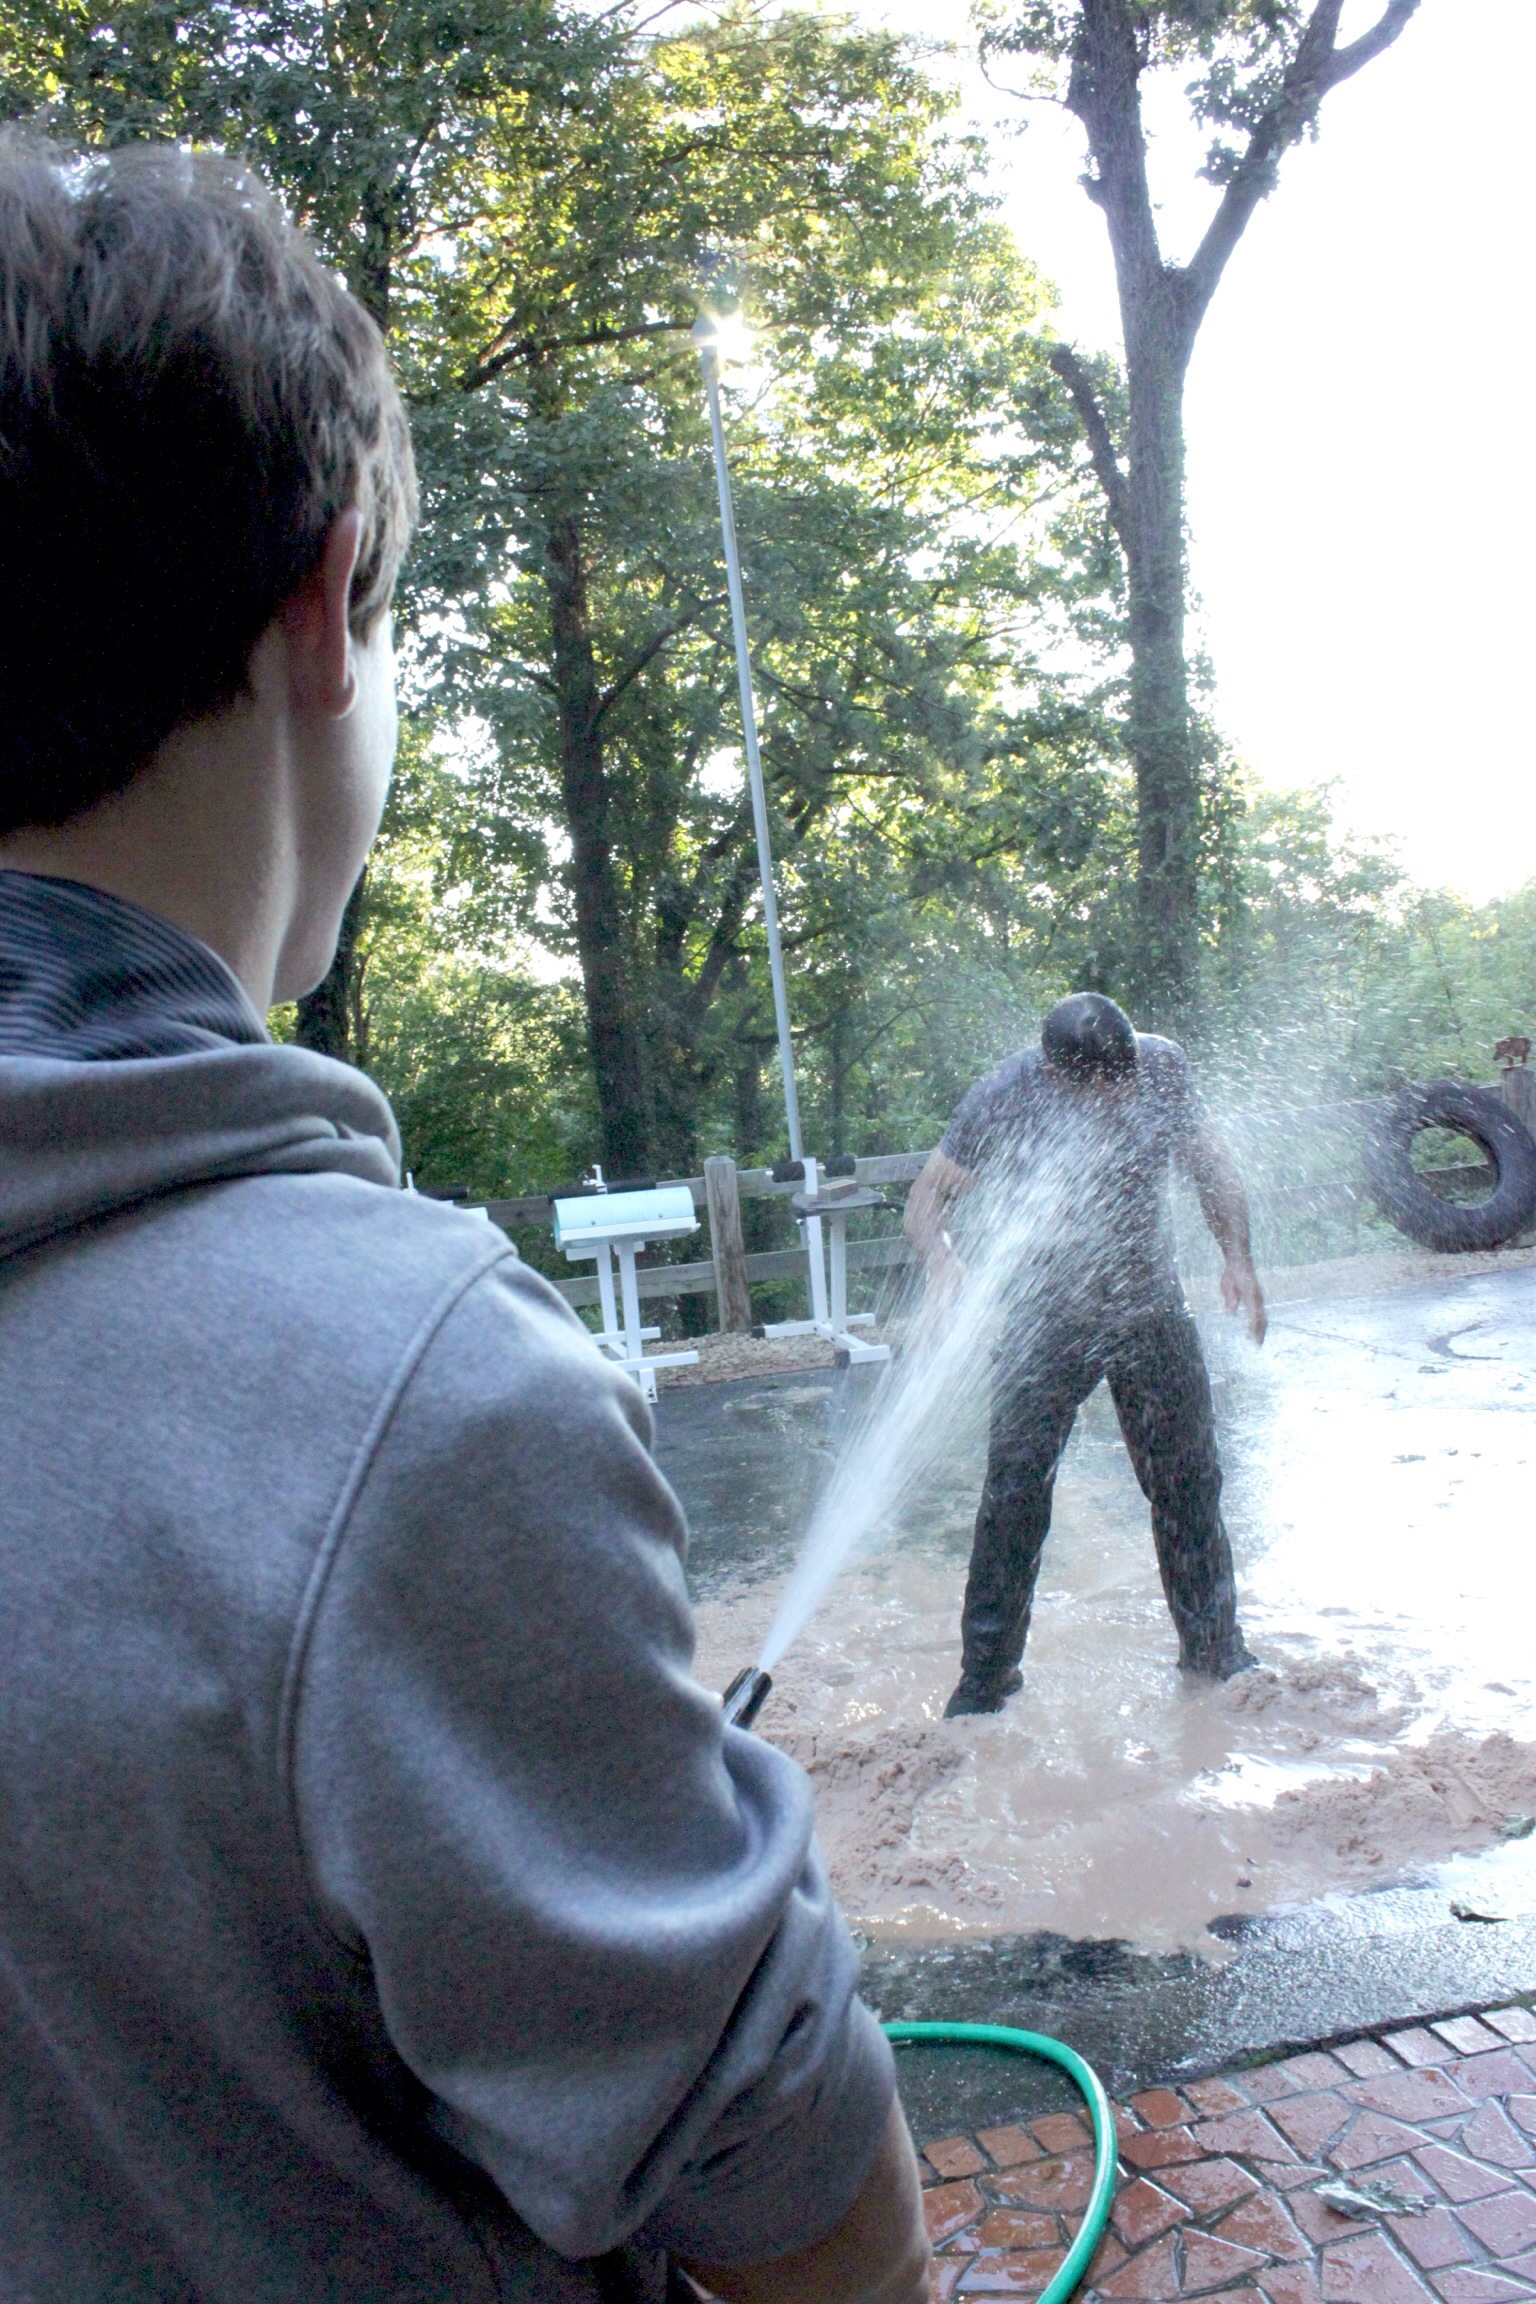 Hayden hits me with a hose during the 1000 burpee/5 mile Run-Burpee-Run workout